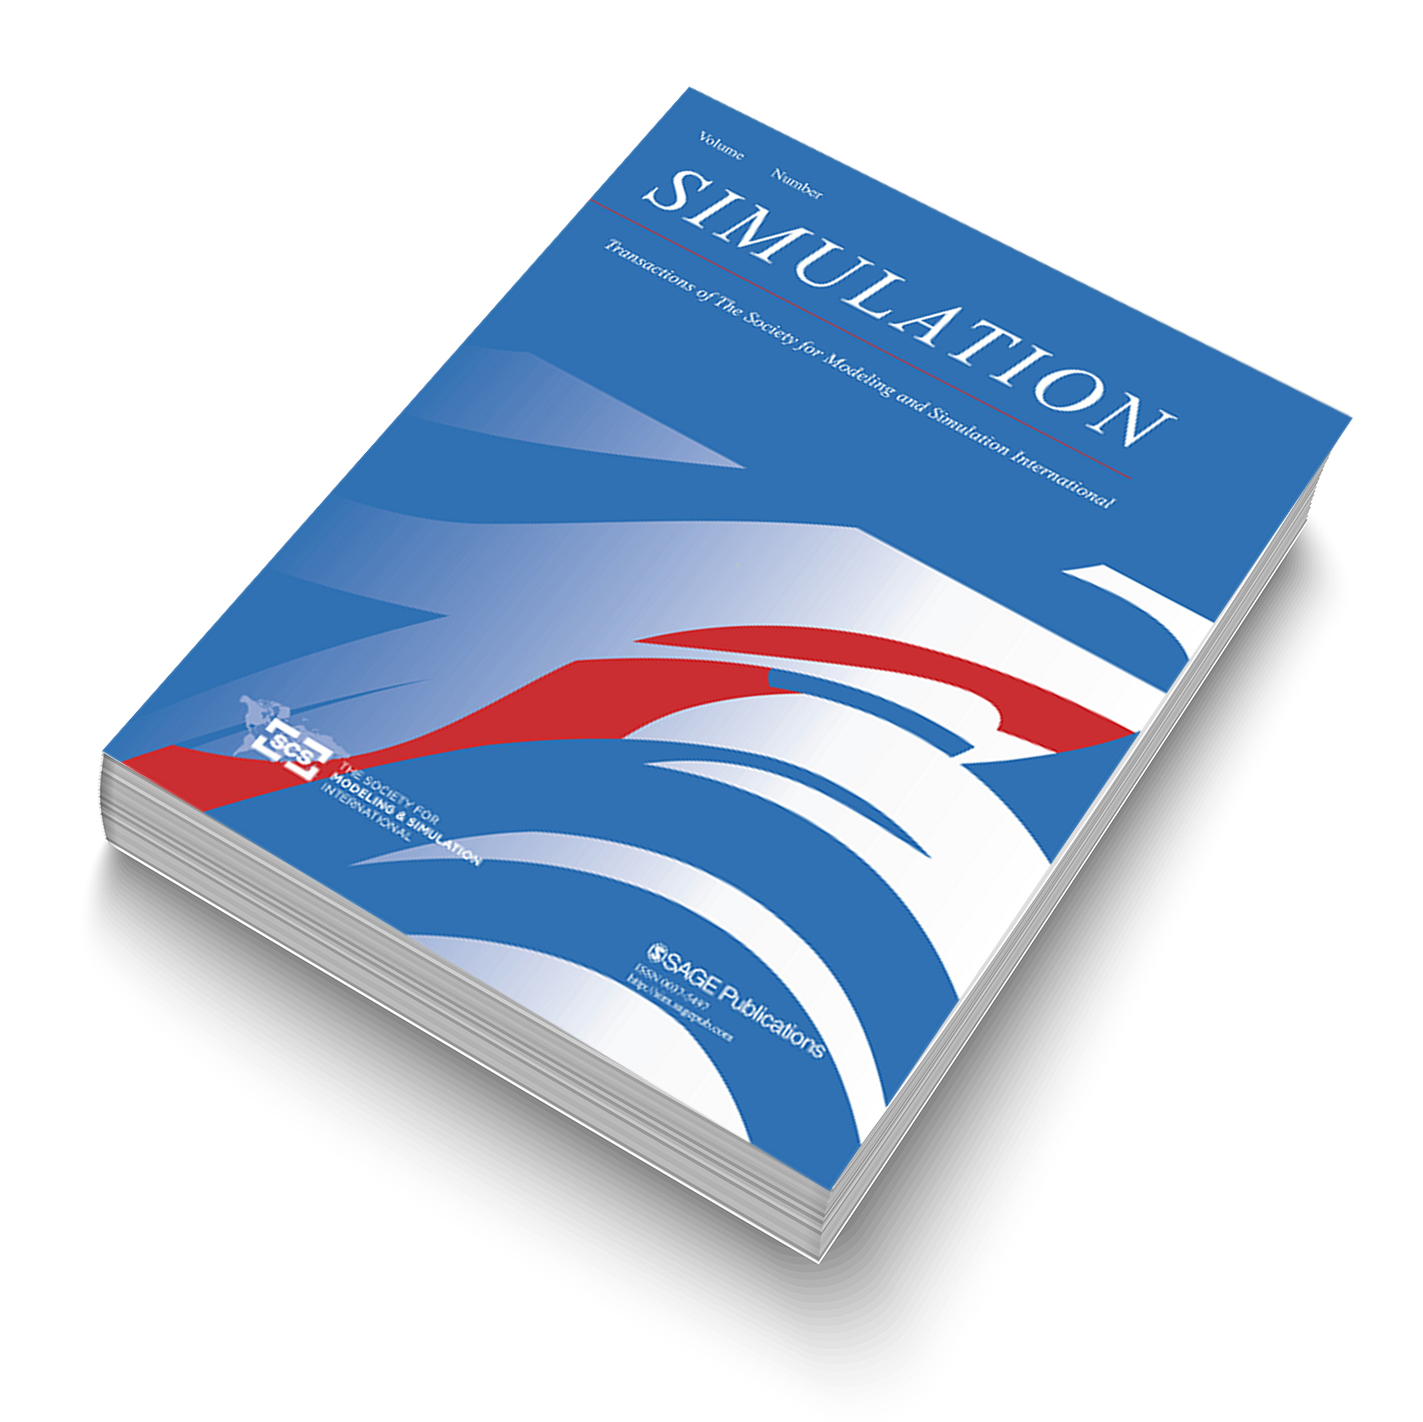 sage_simulation_journal